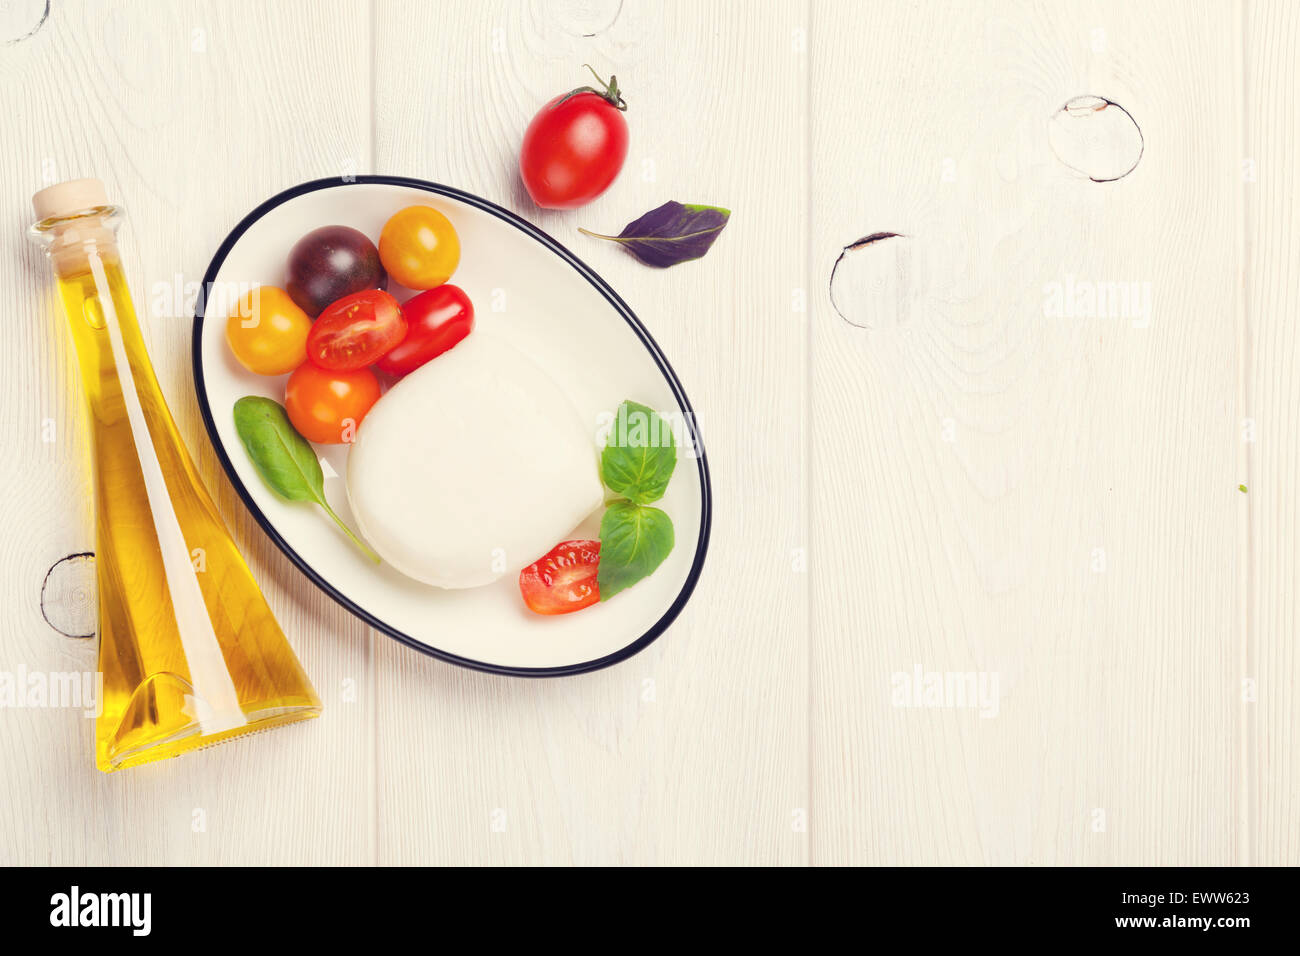 Mozzarella, tomatoes, basil and olive oil on wooden table. Top view with copy space. Toned Stock Photo